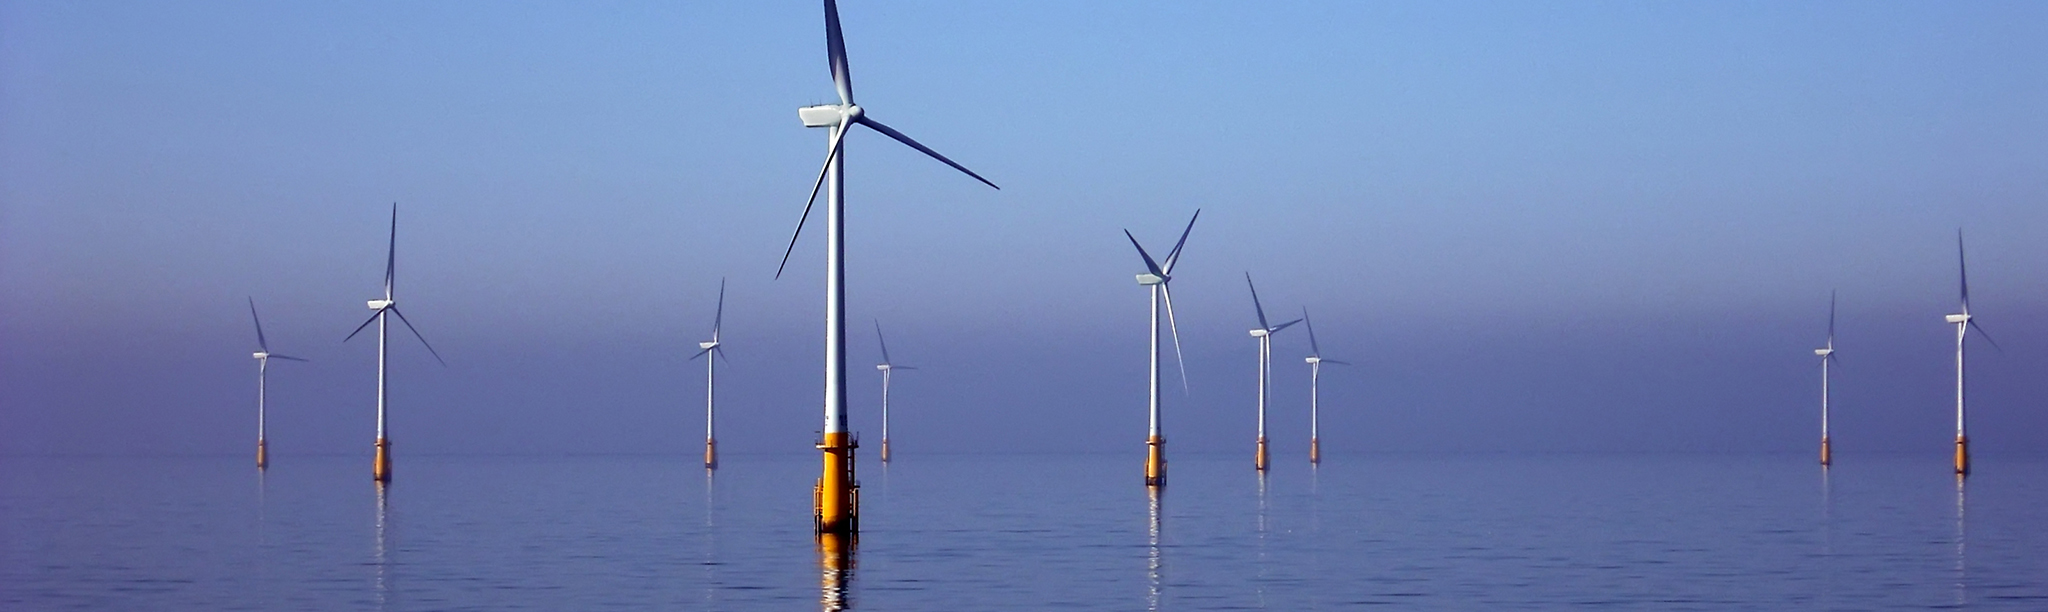 Wind turbines in an ocean, supporting sustainability